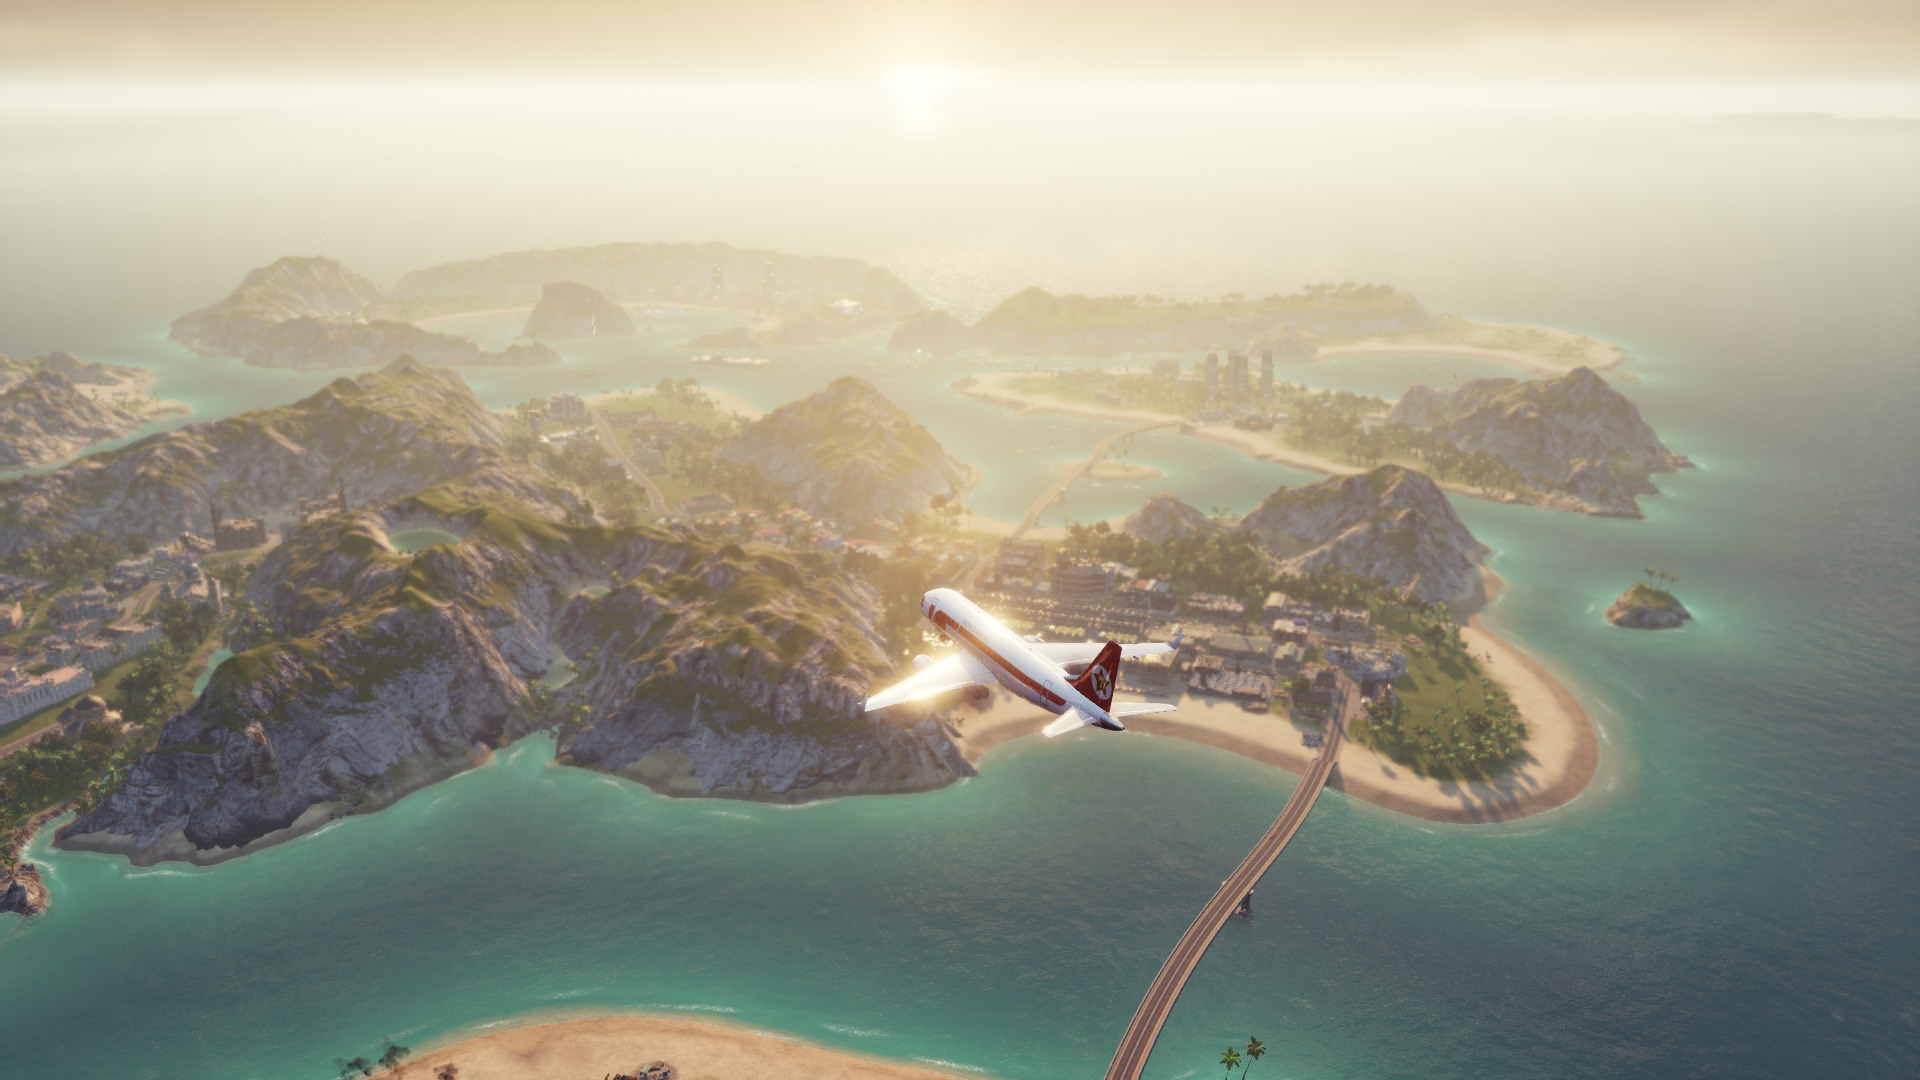 gamescom 2018: TROPICO 6 Revealed for 2019 with New Trailer